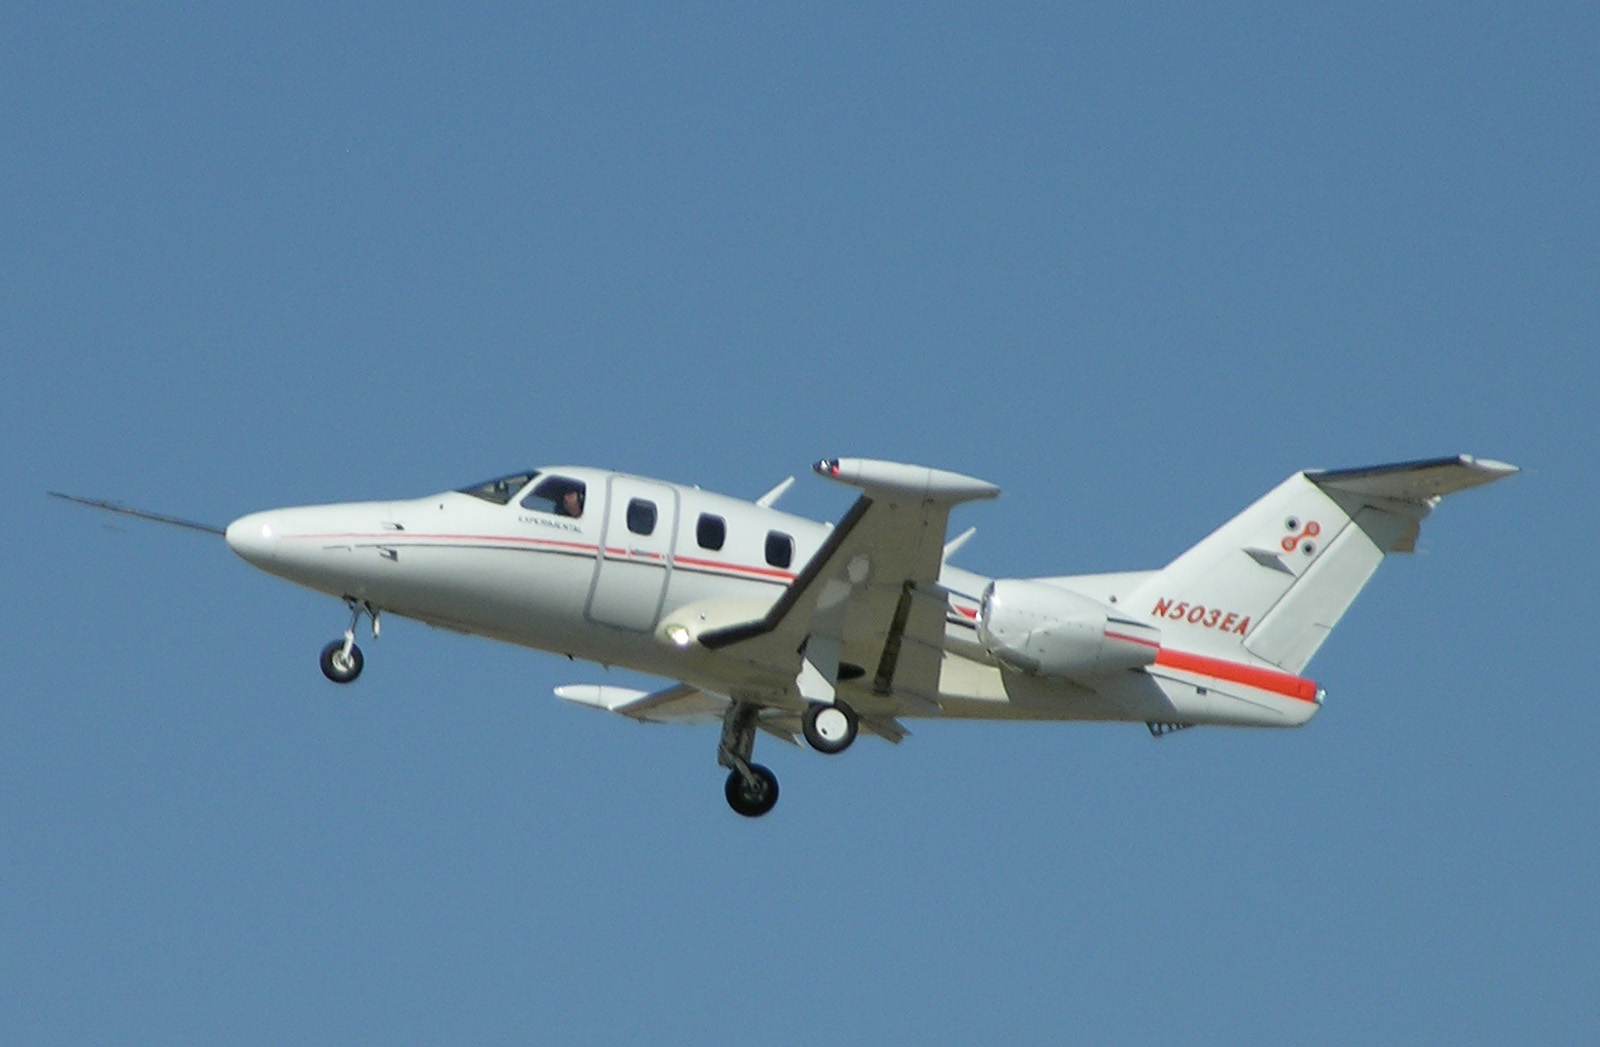 Eclipse 500 take off